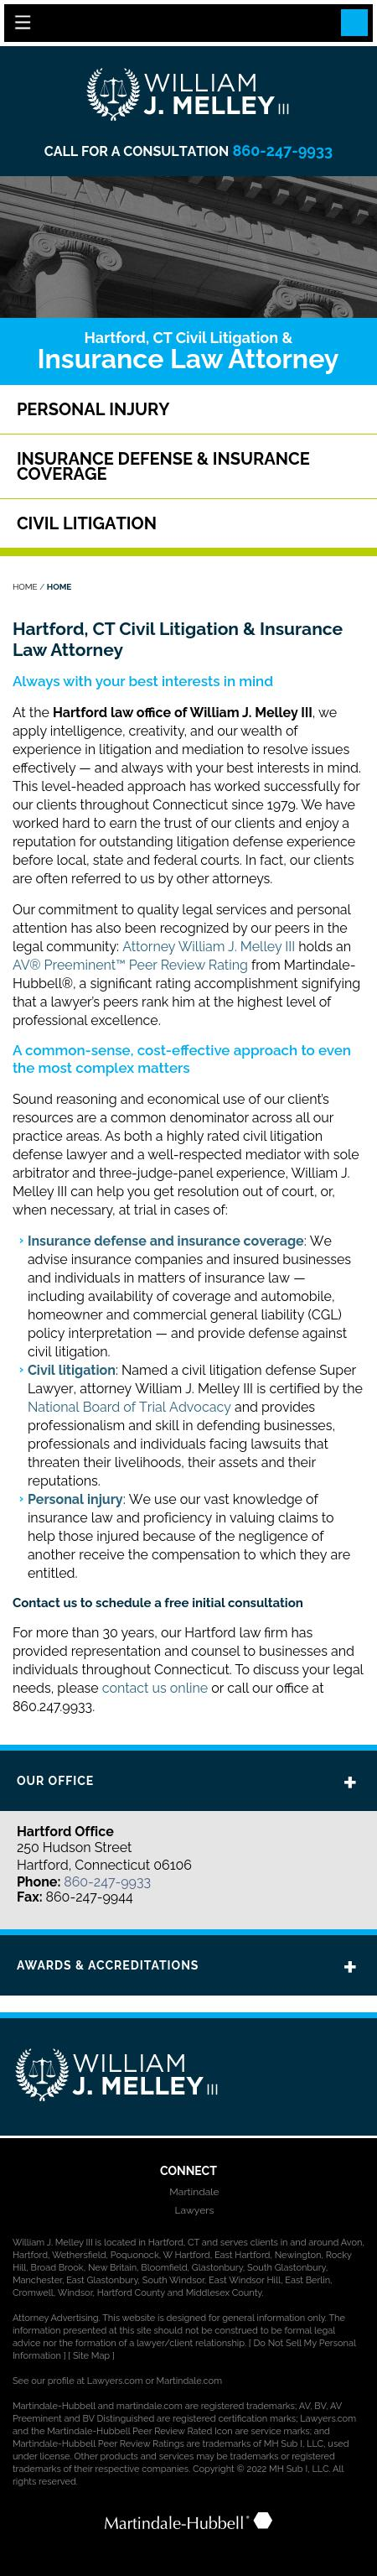 Melley William J - Hartford CT Lawyers